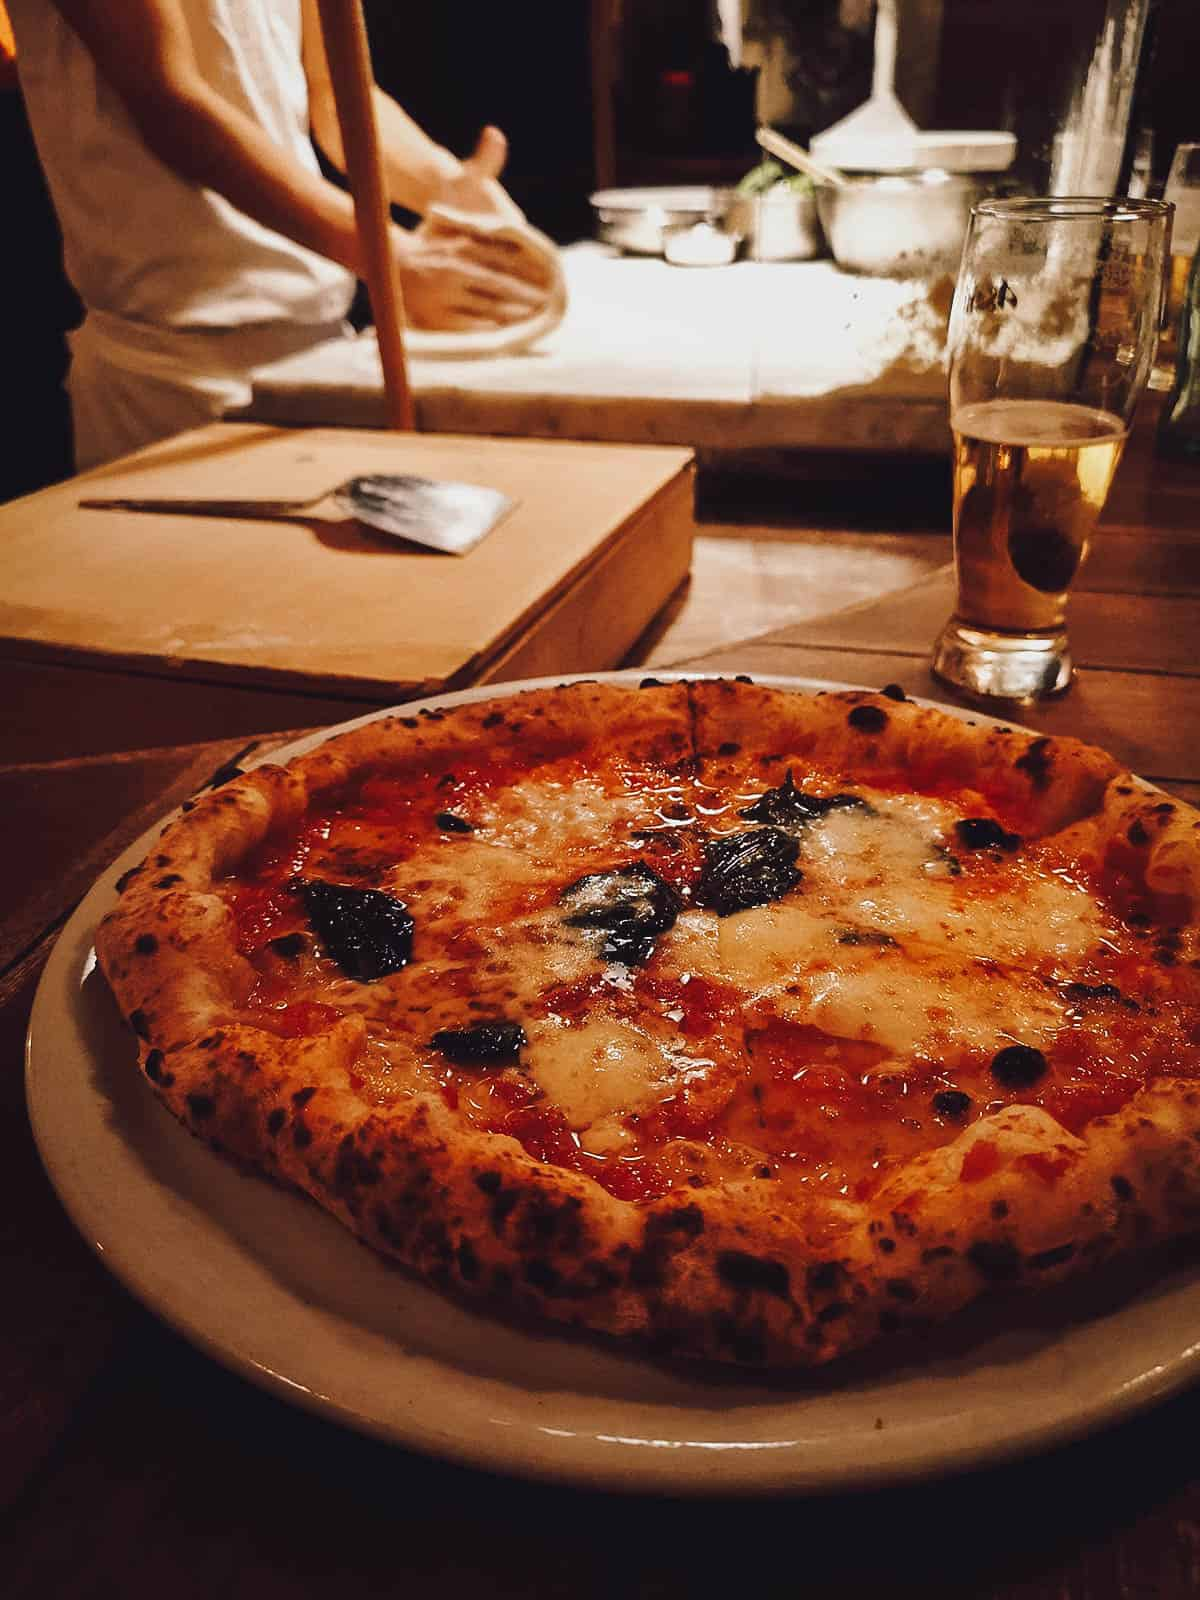 Margherita pizza at Savoy in Tokyo, Japan